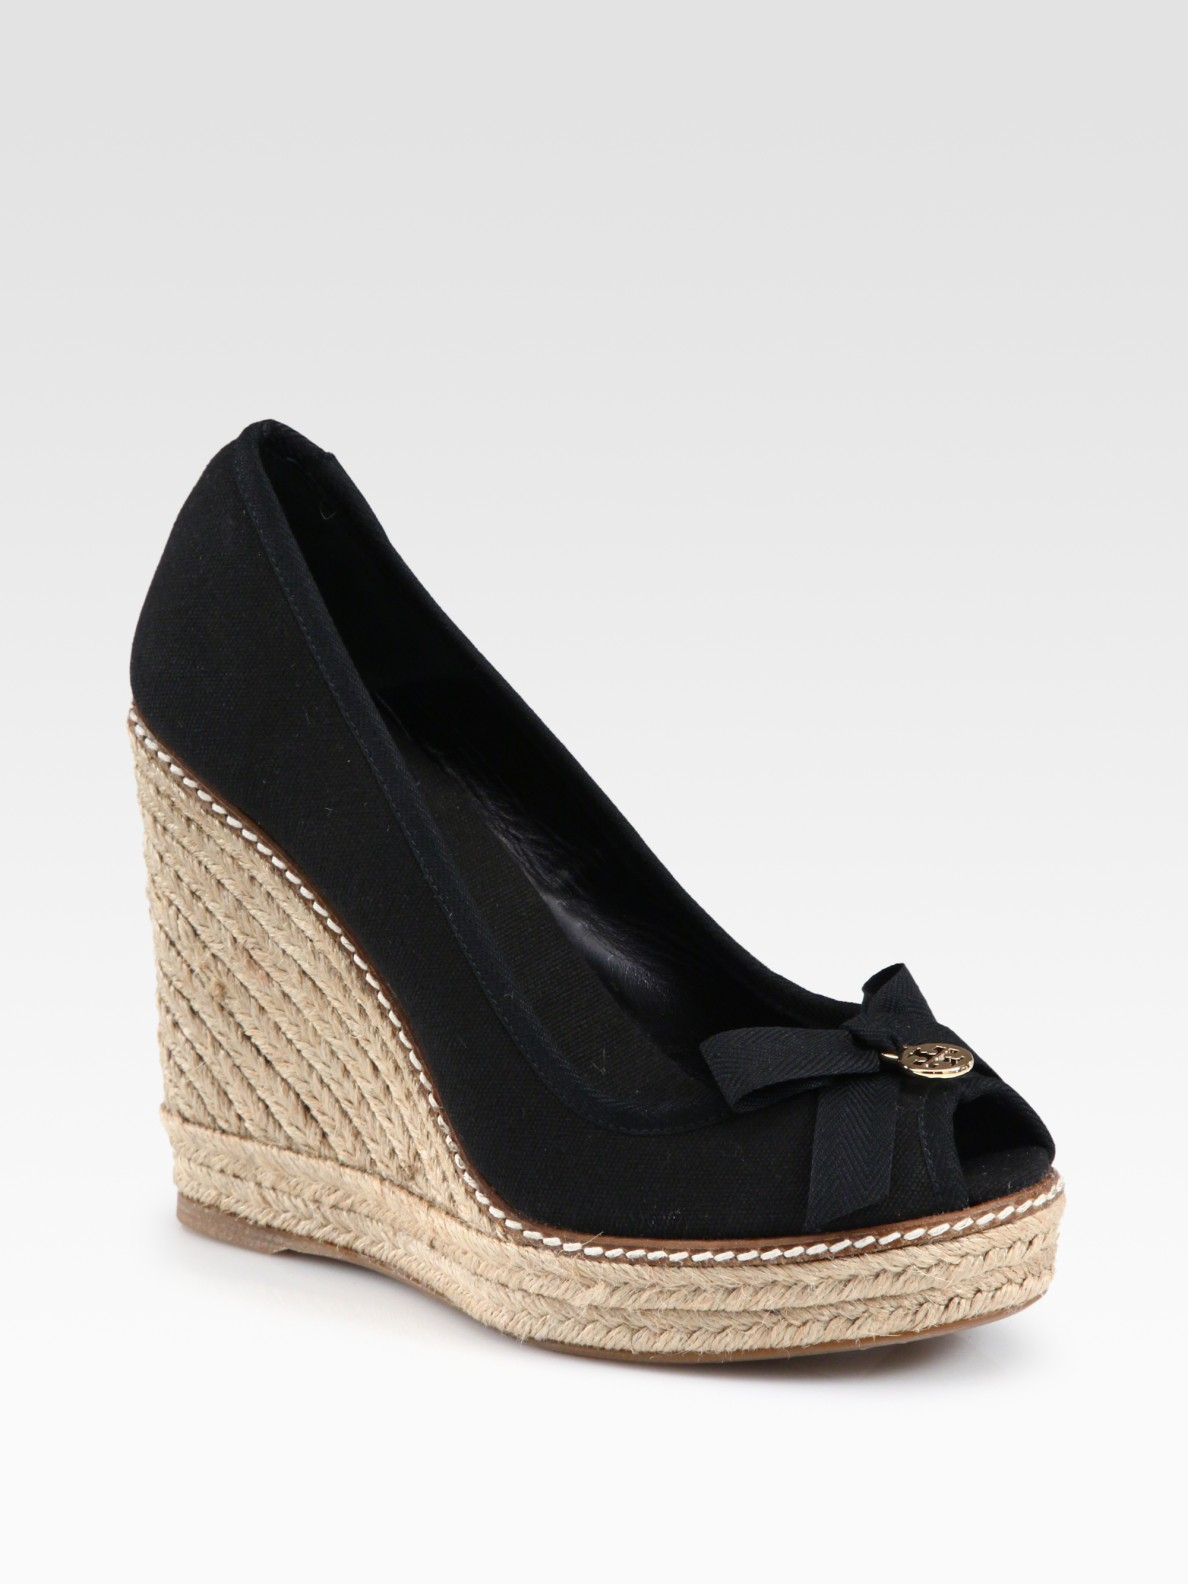 6c03c87536c Lyst - Tory Burch Jackie Canvas Espadrille Wedges in Black